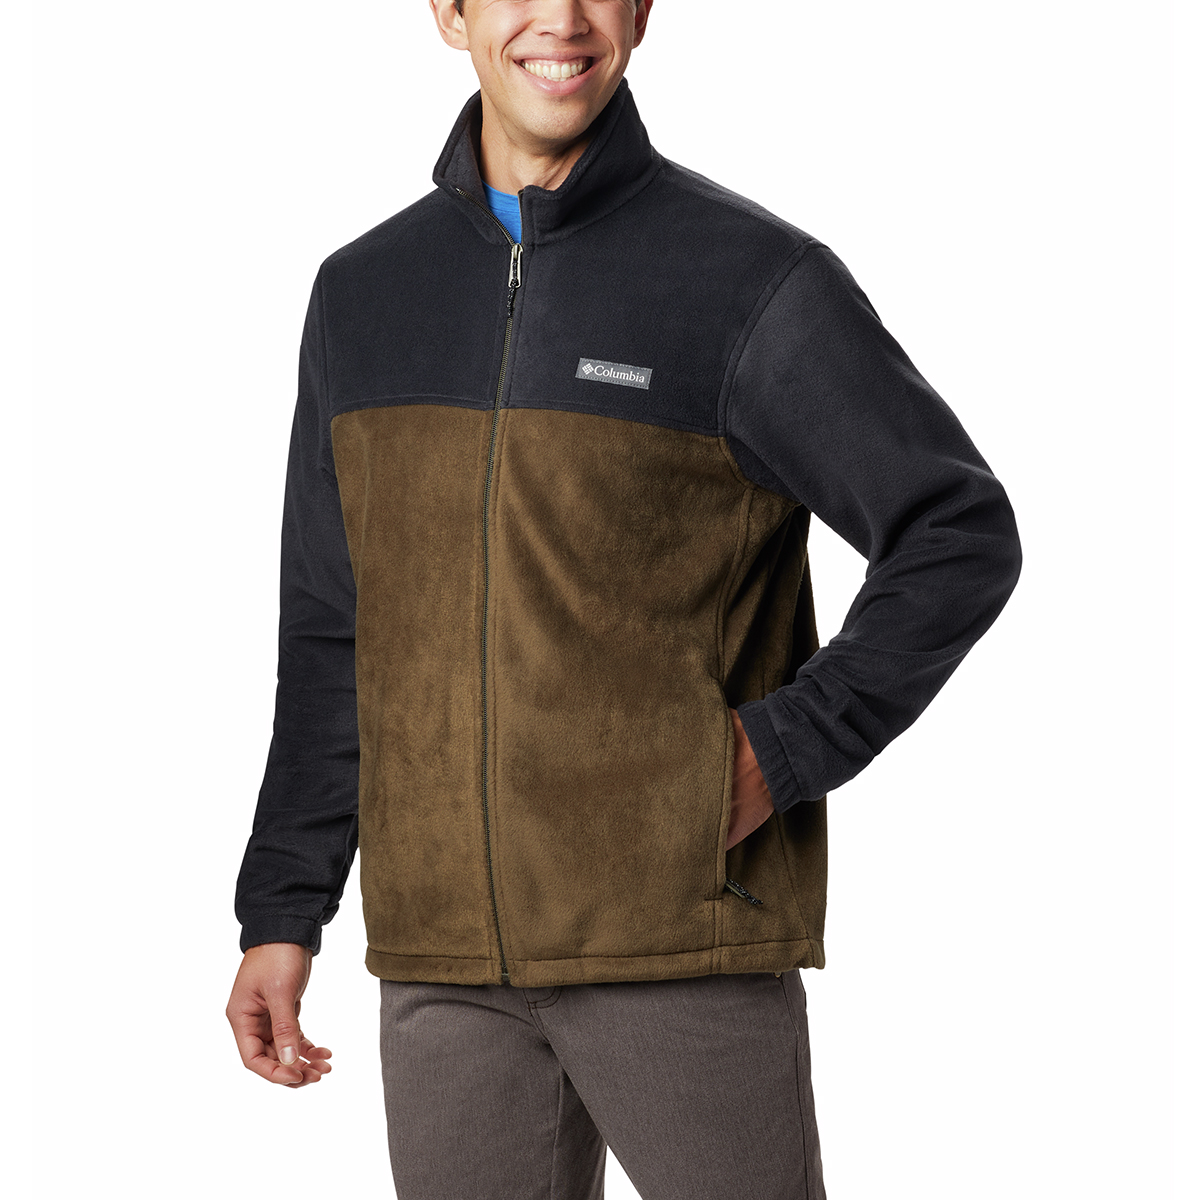 Columbia Men's Steens Mountain Full-Zip  2.0 Fleece Jacket - Black, S